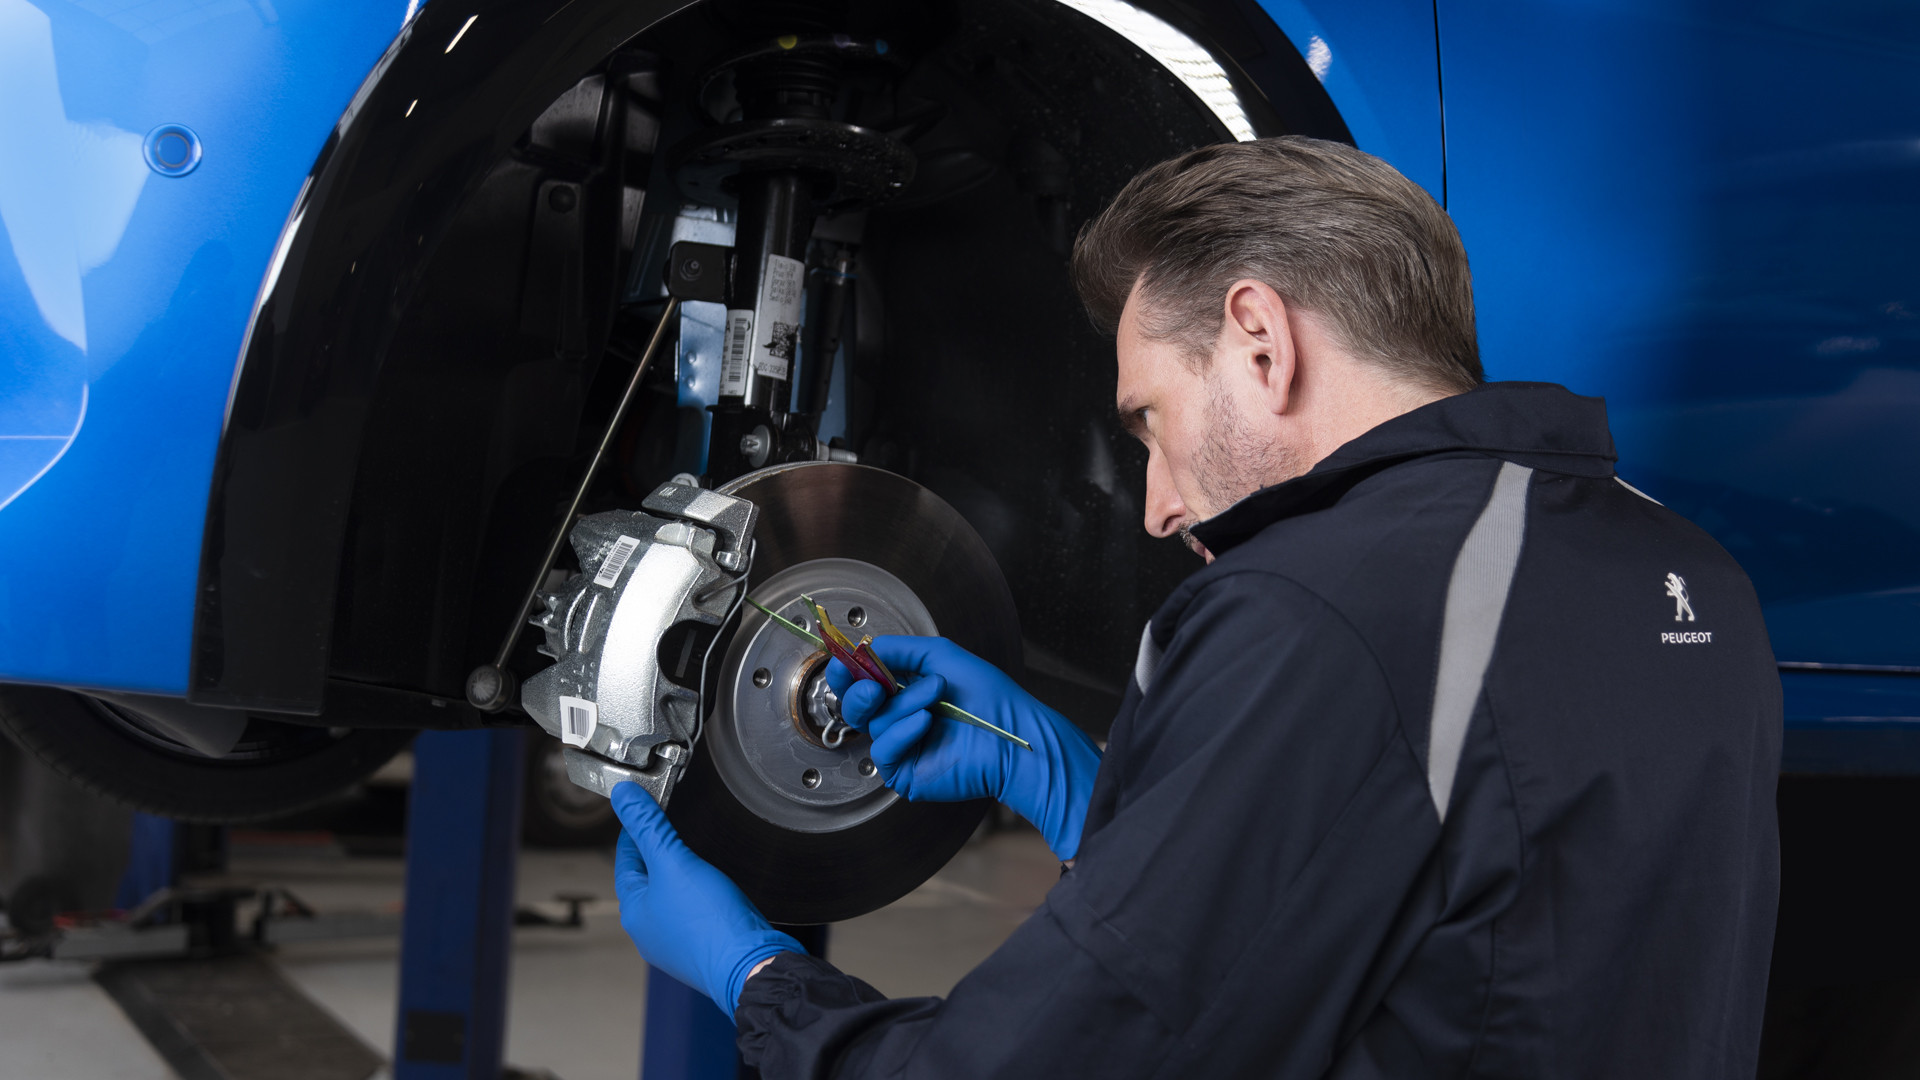 The things to check before your MOT